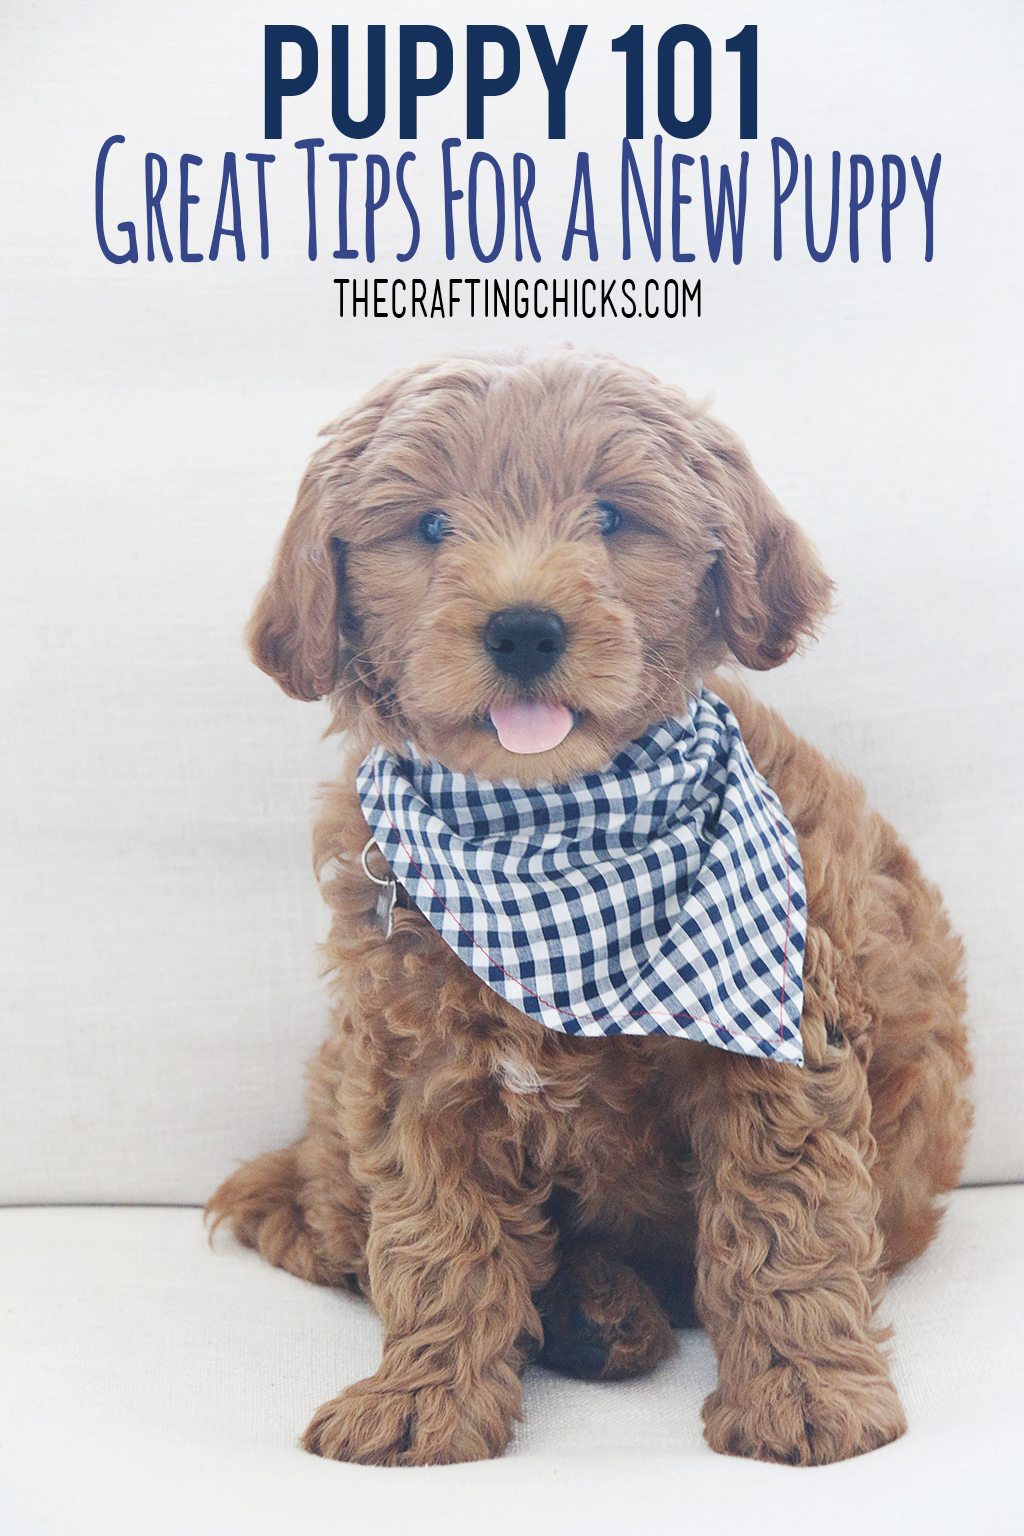 Puppy 101 | Great Tips for a New Puppy